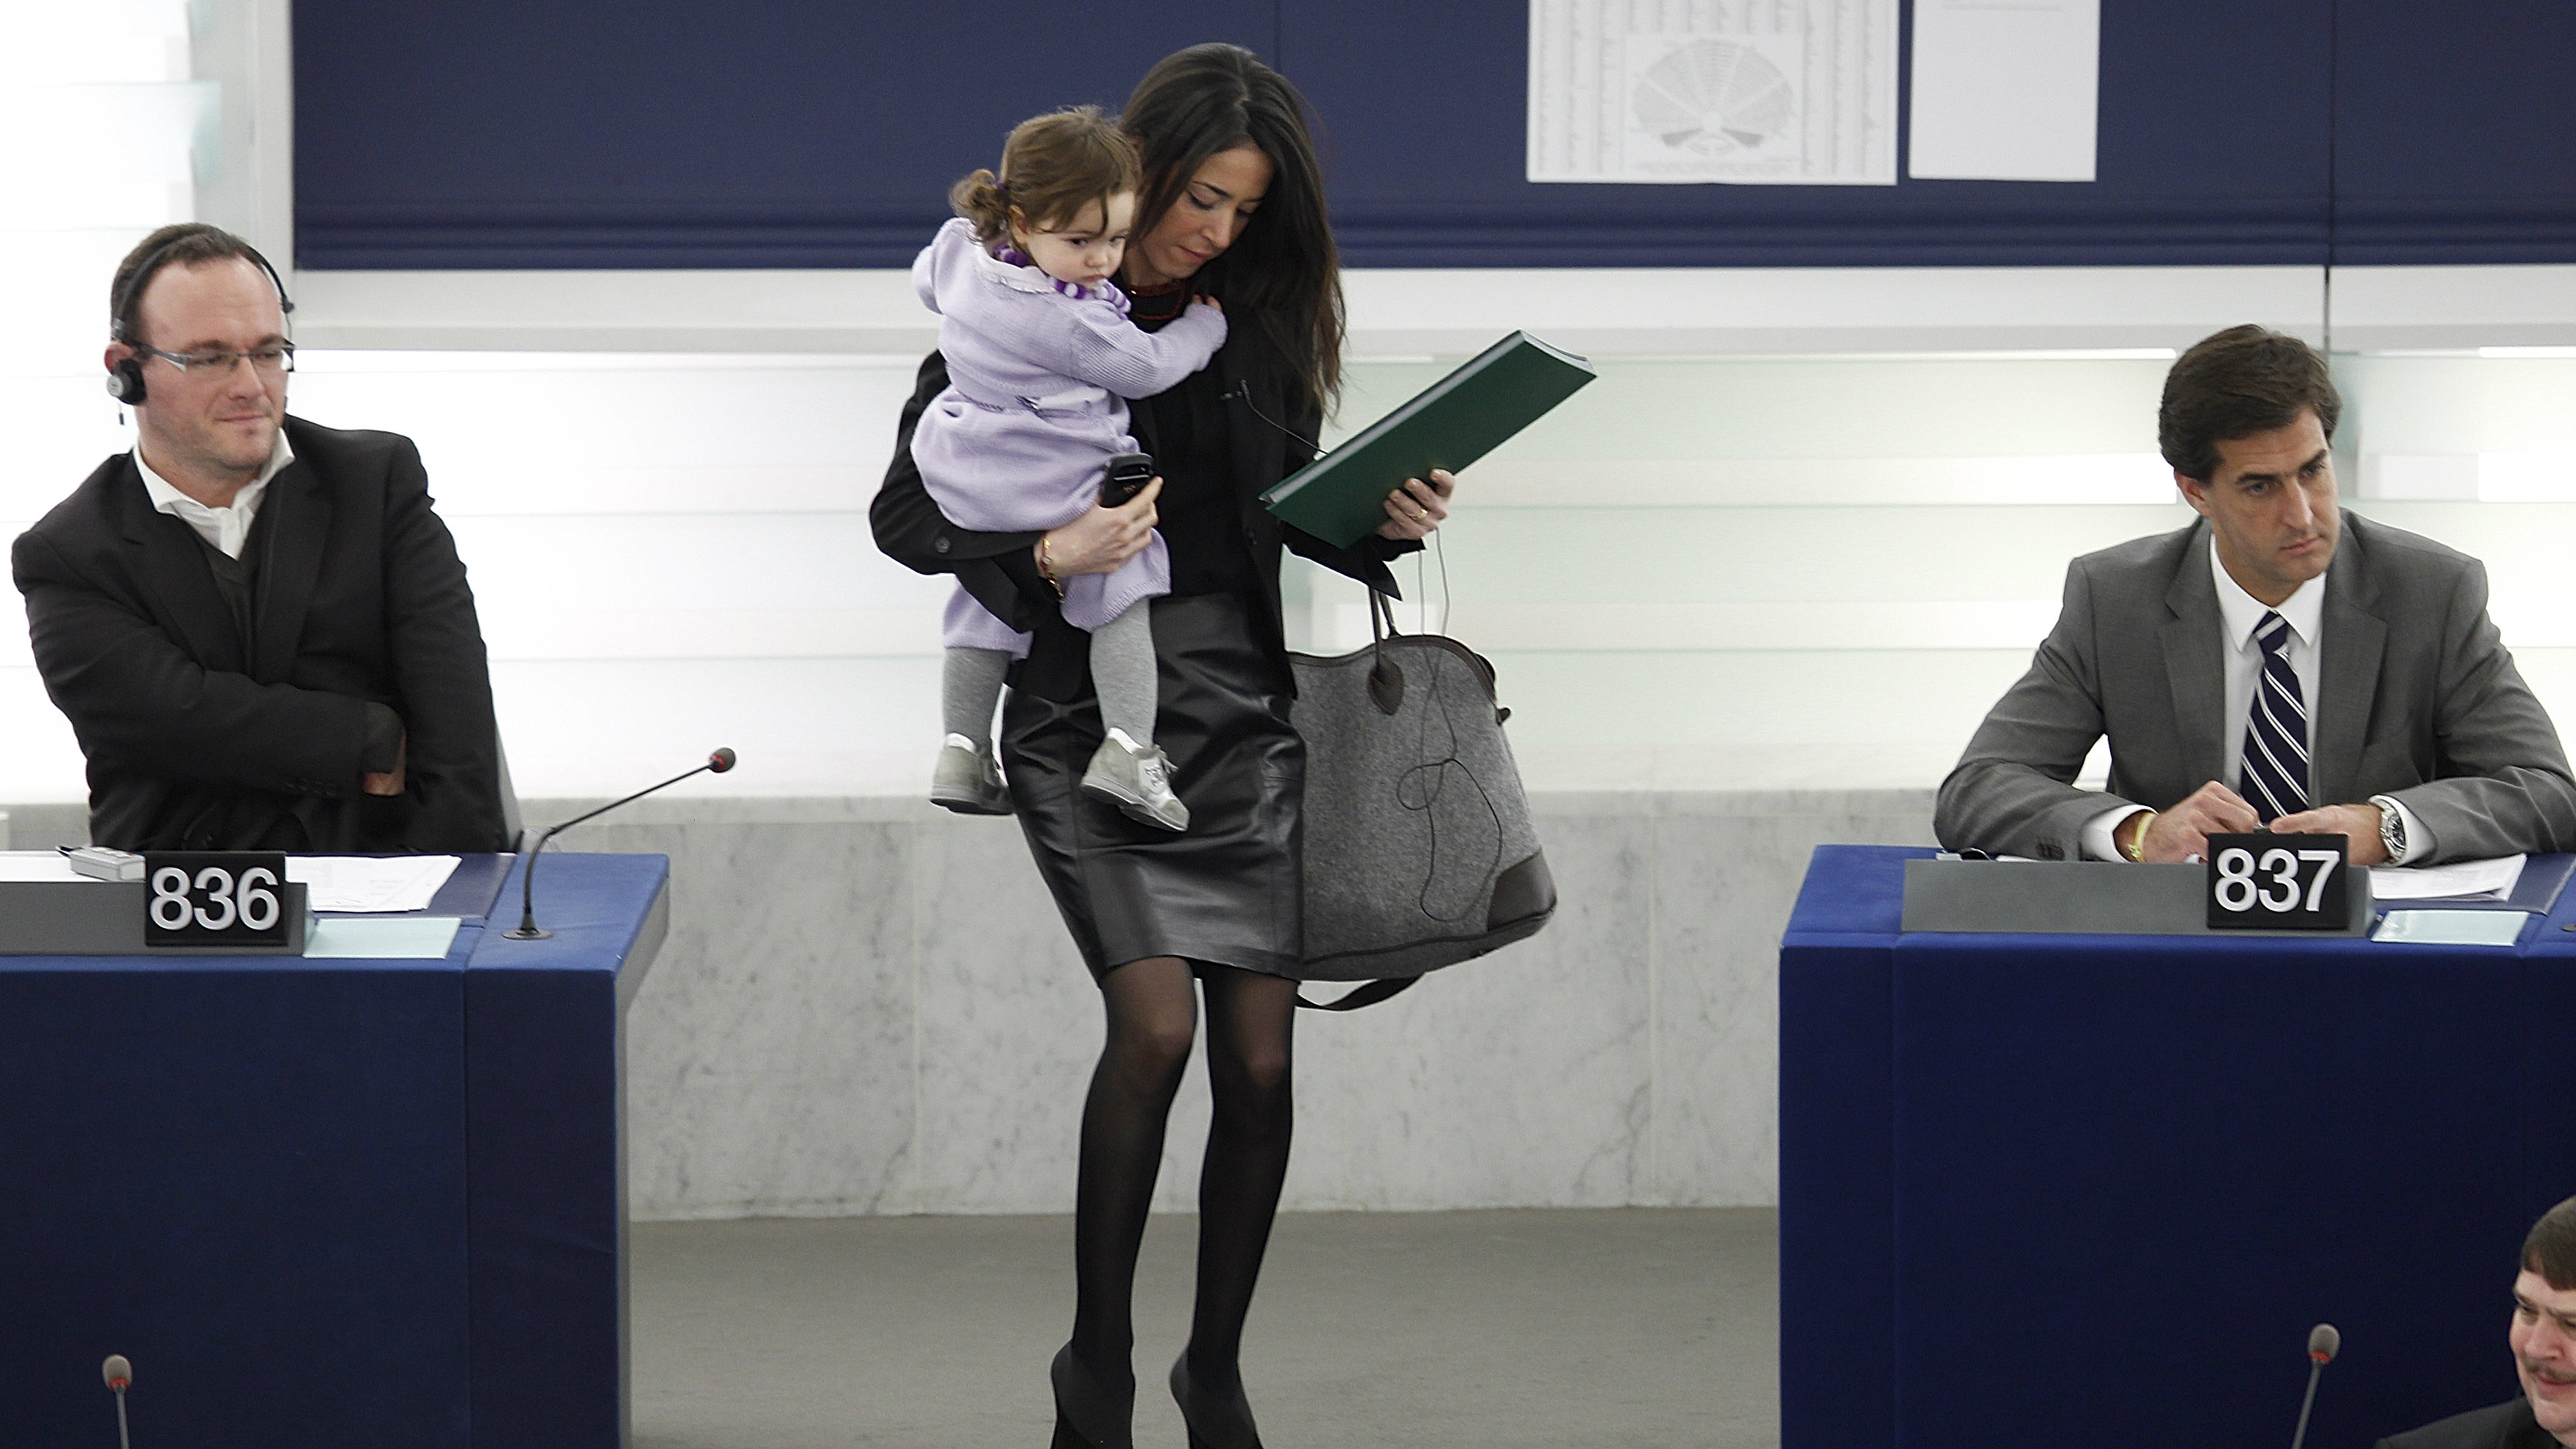 Italy's Member of the European Parliament Ronzulli arrives with her daughter to take part in voting..